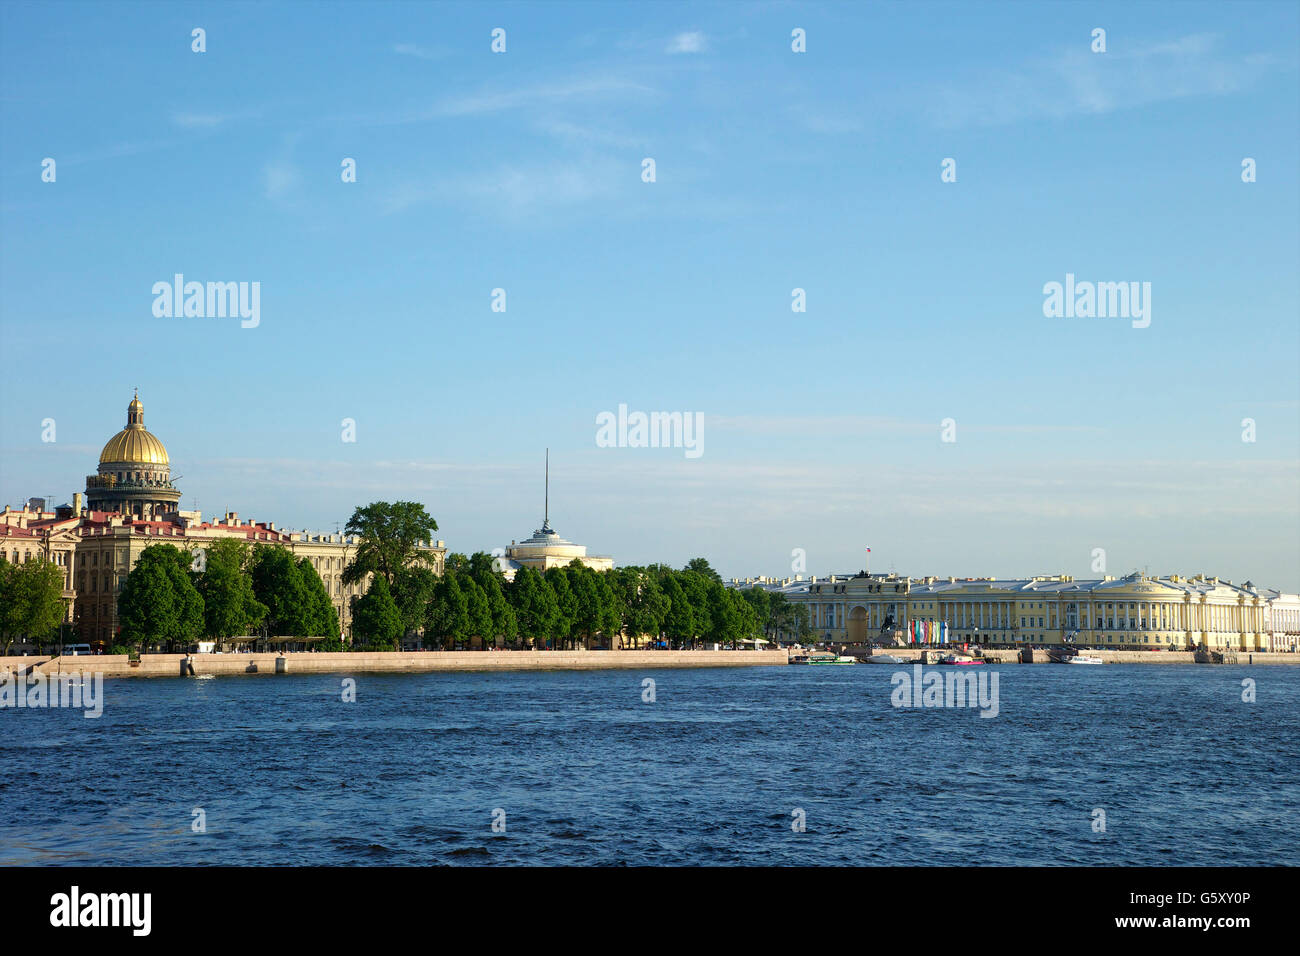 River Neva with St Isaac's Cathedral and the Admiralty, Saint Petersburg, Russia - Stock Image